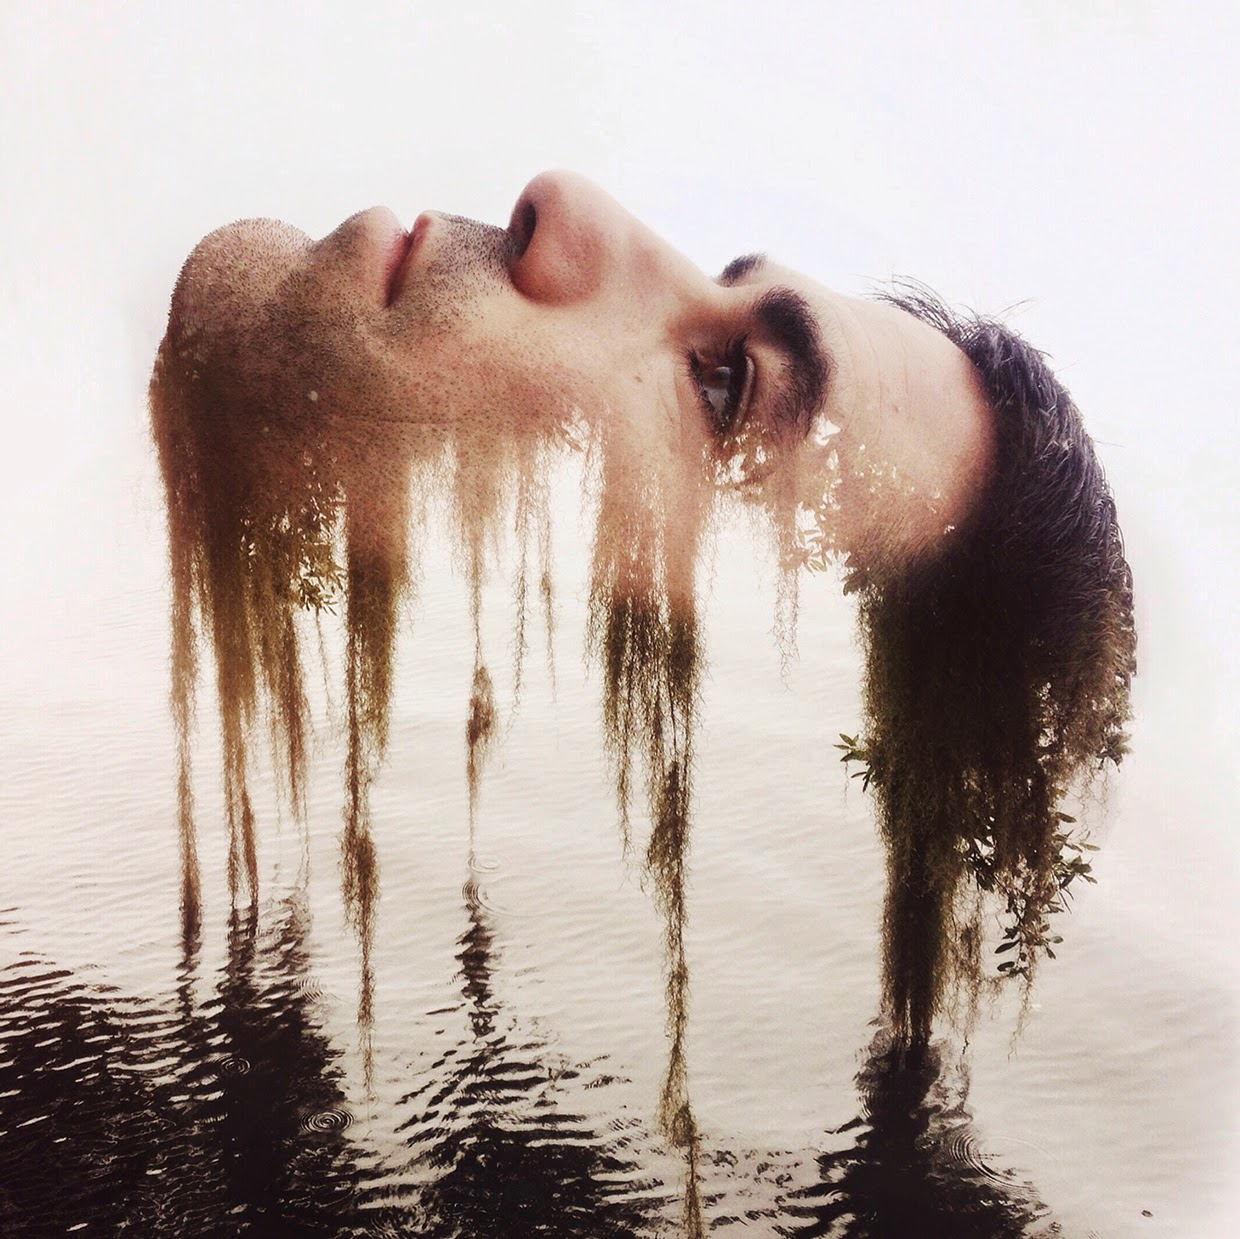 12-Brandon-Kidwell-Stories-in-Double-Exposure-Portrait-Photographs-www-designstack-co